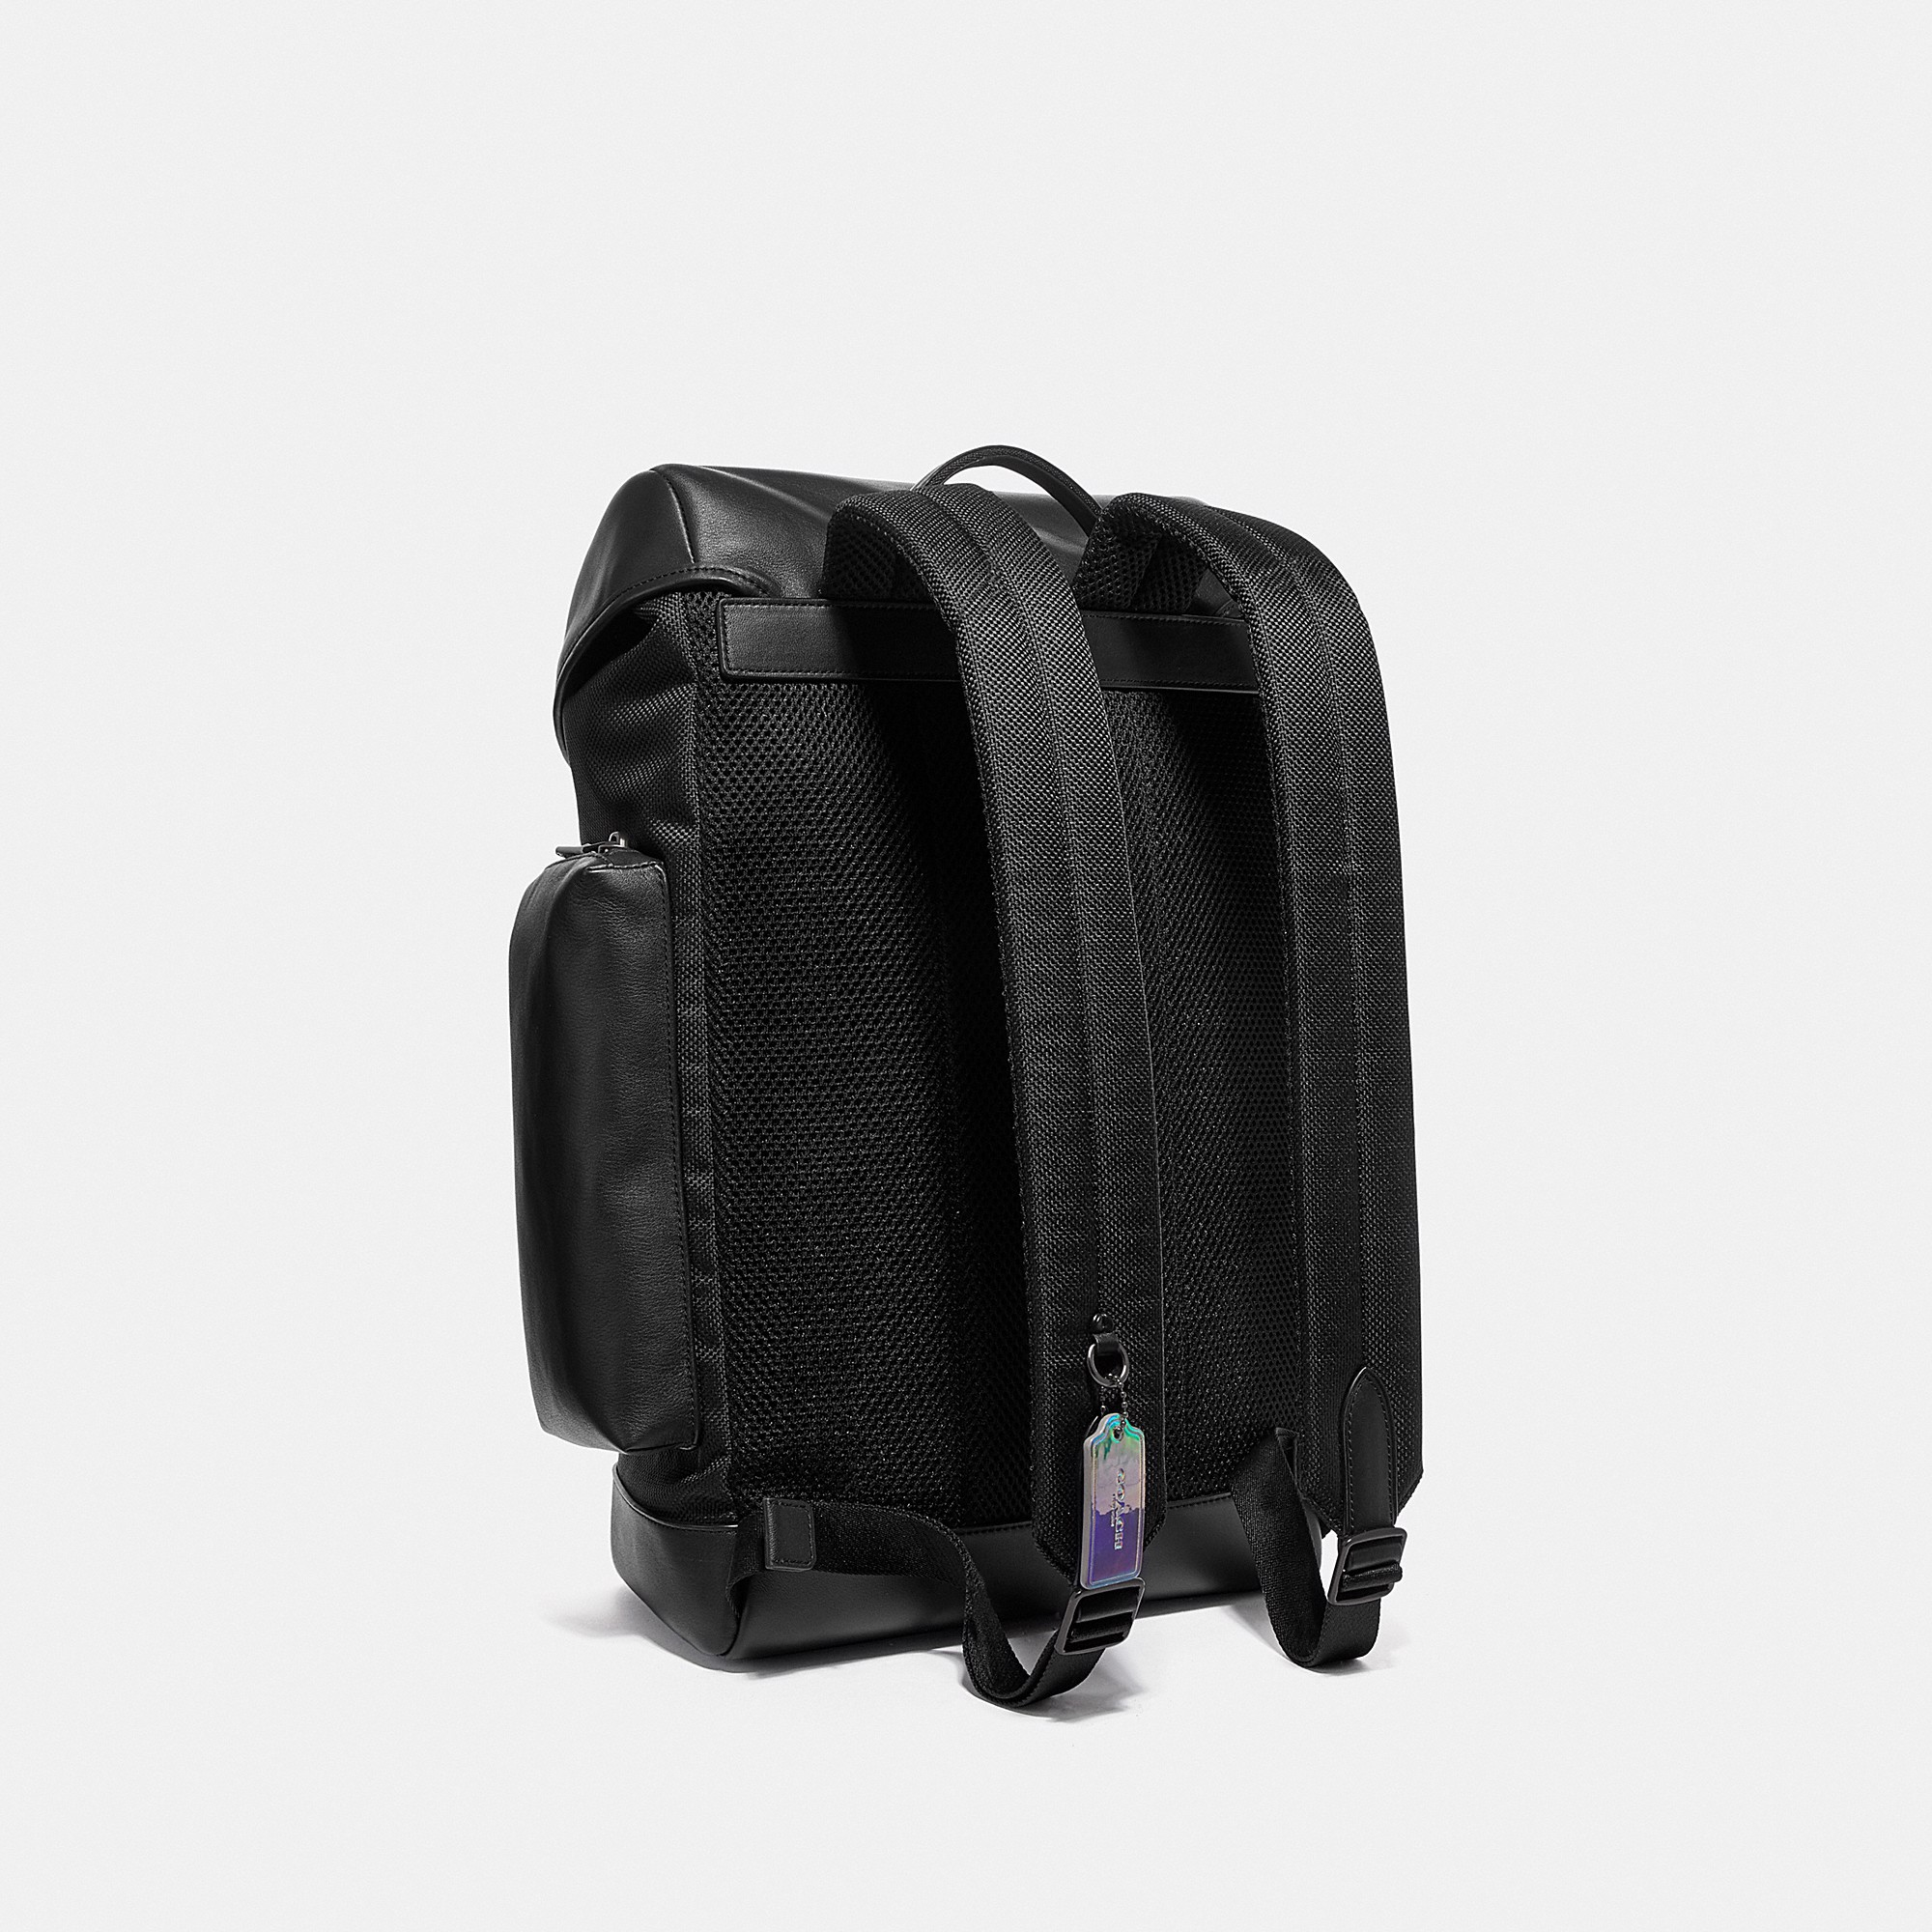 Coach Ranger Backpack 'Black/Prism'